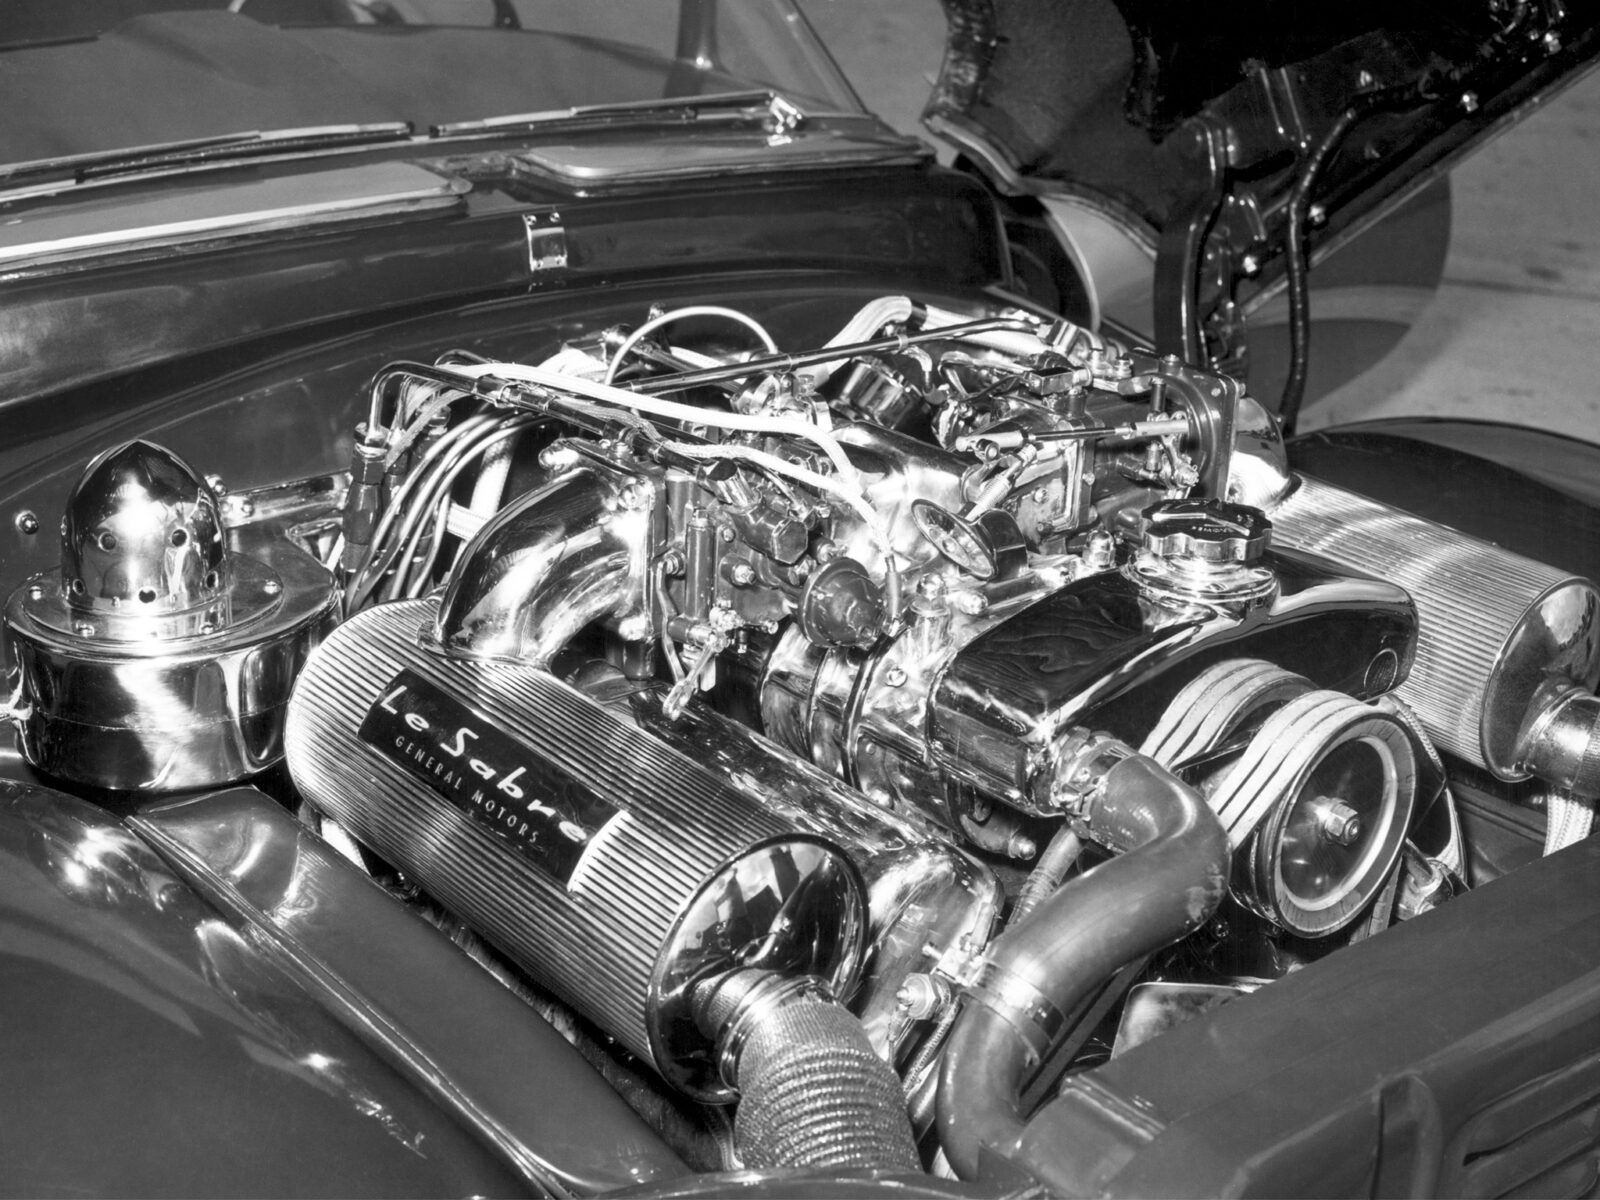 Buick Le Sabre engine